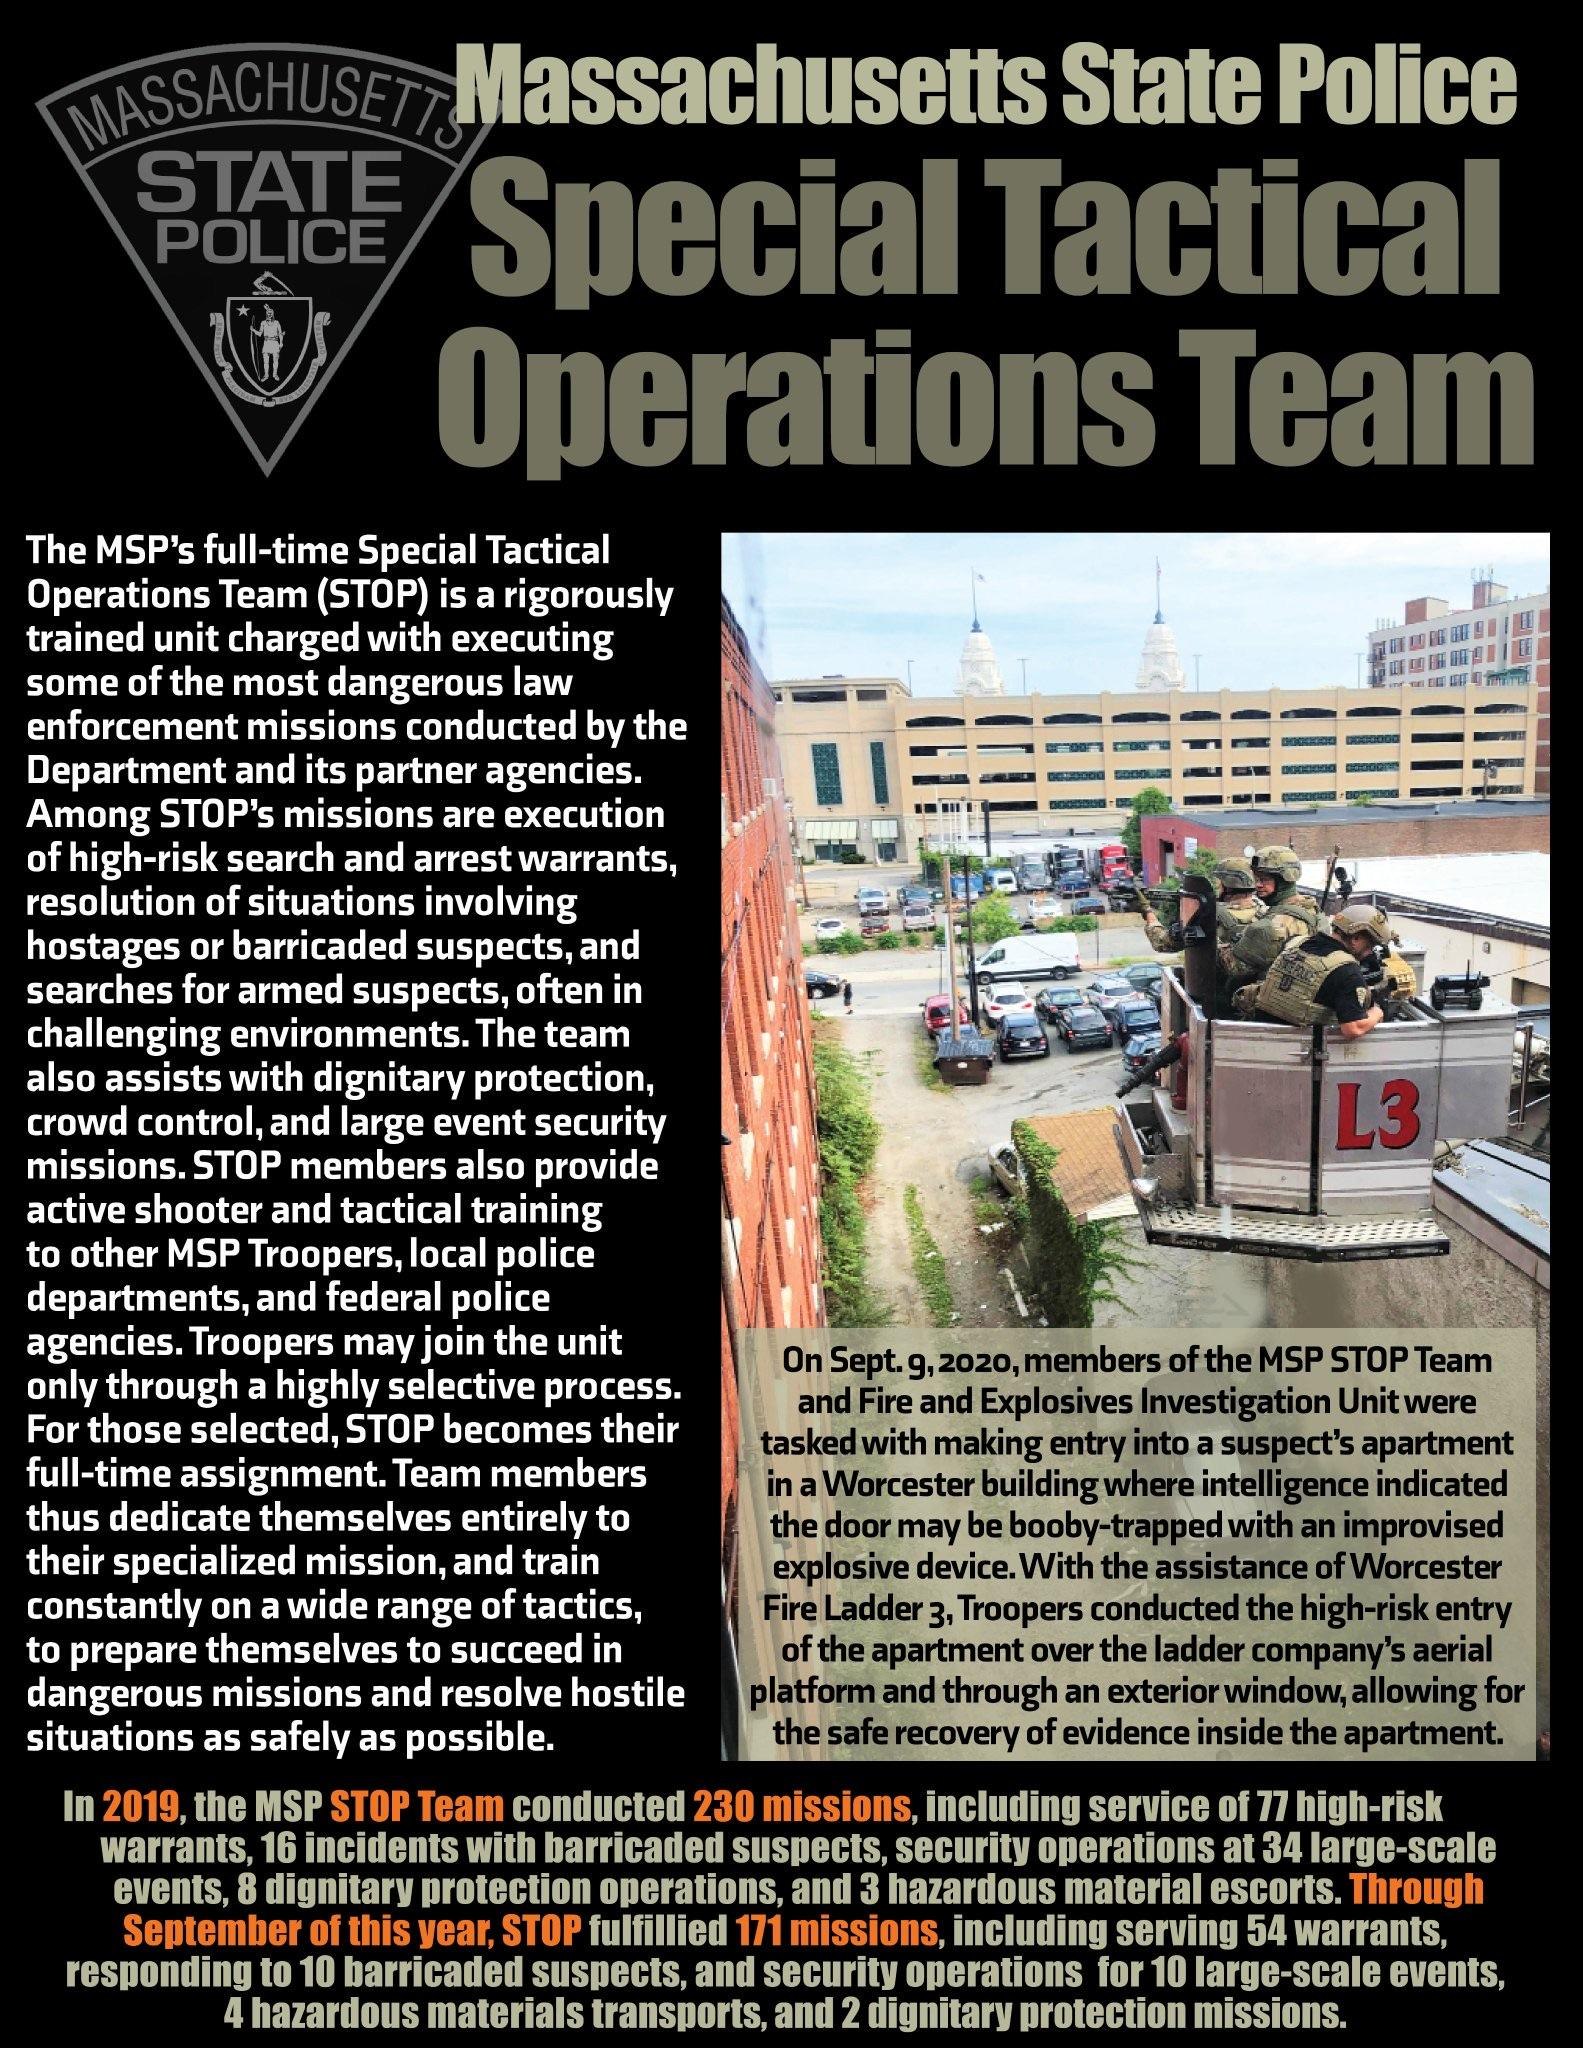 Massachusetts State Police Special Tactical Operations Team